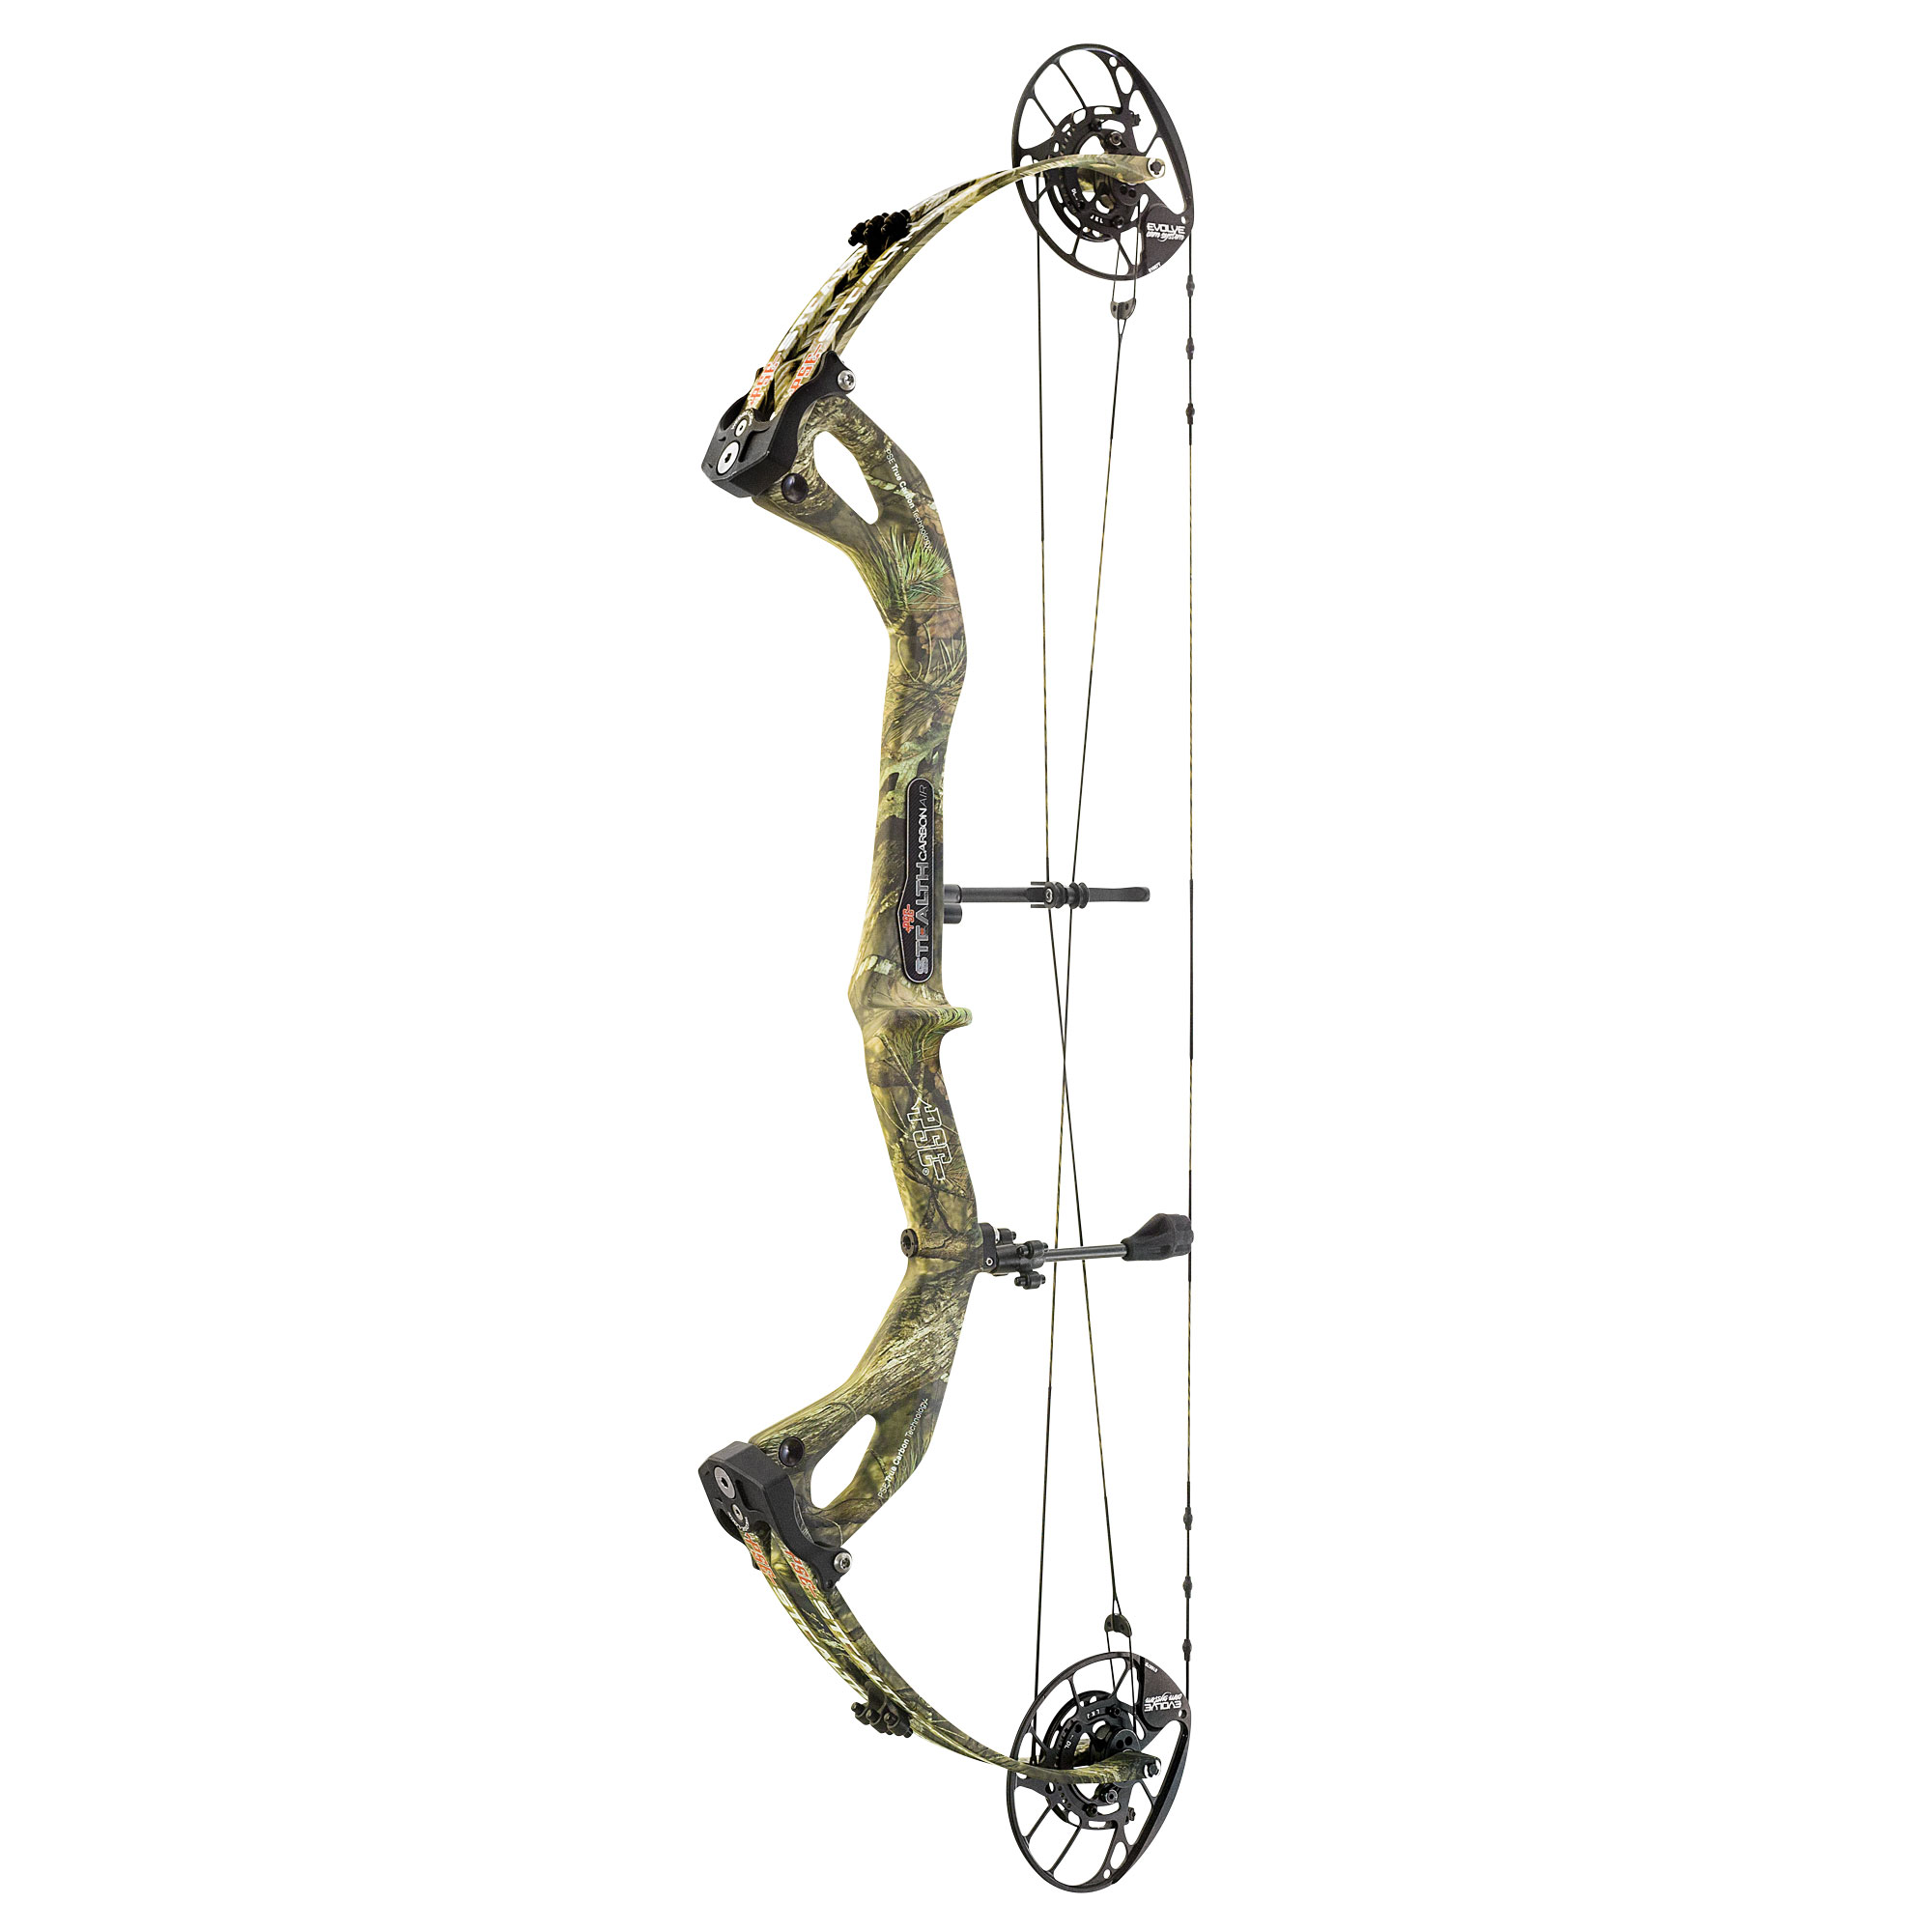 2020 PSE Carbon Air Stealth 35 EC in Mossy Oak Country